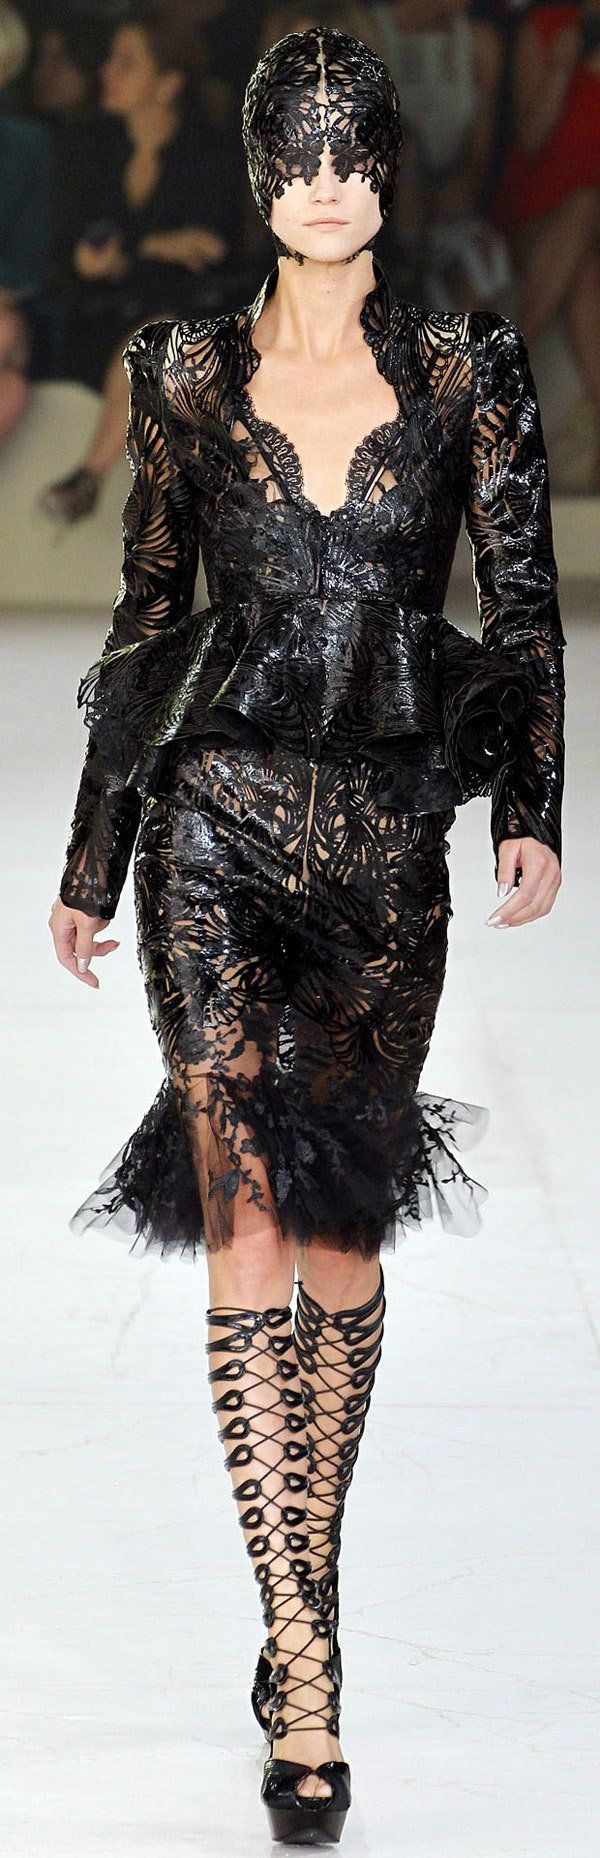 Alexander McQueen 2012... reminds me of a costume from the Aeon Flux movie...........which is so NOT the MTV show!